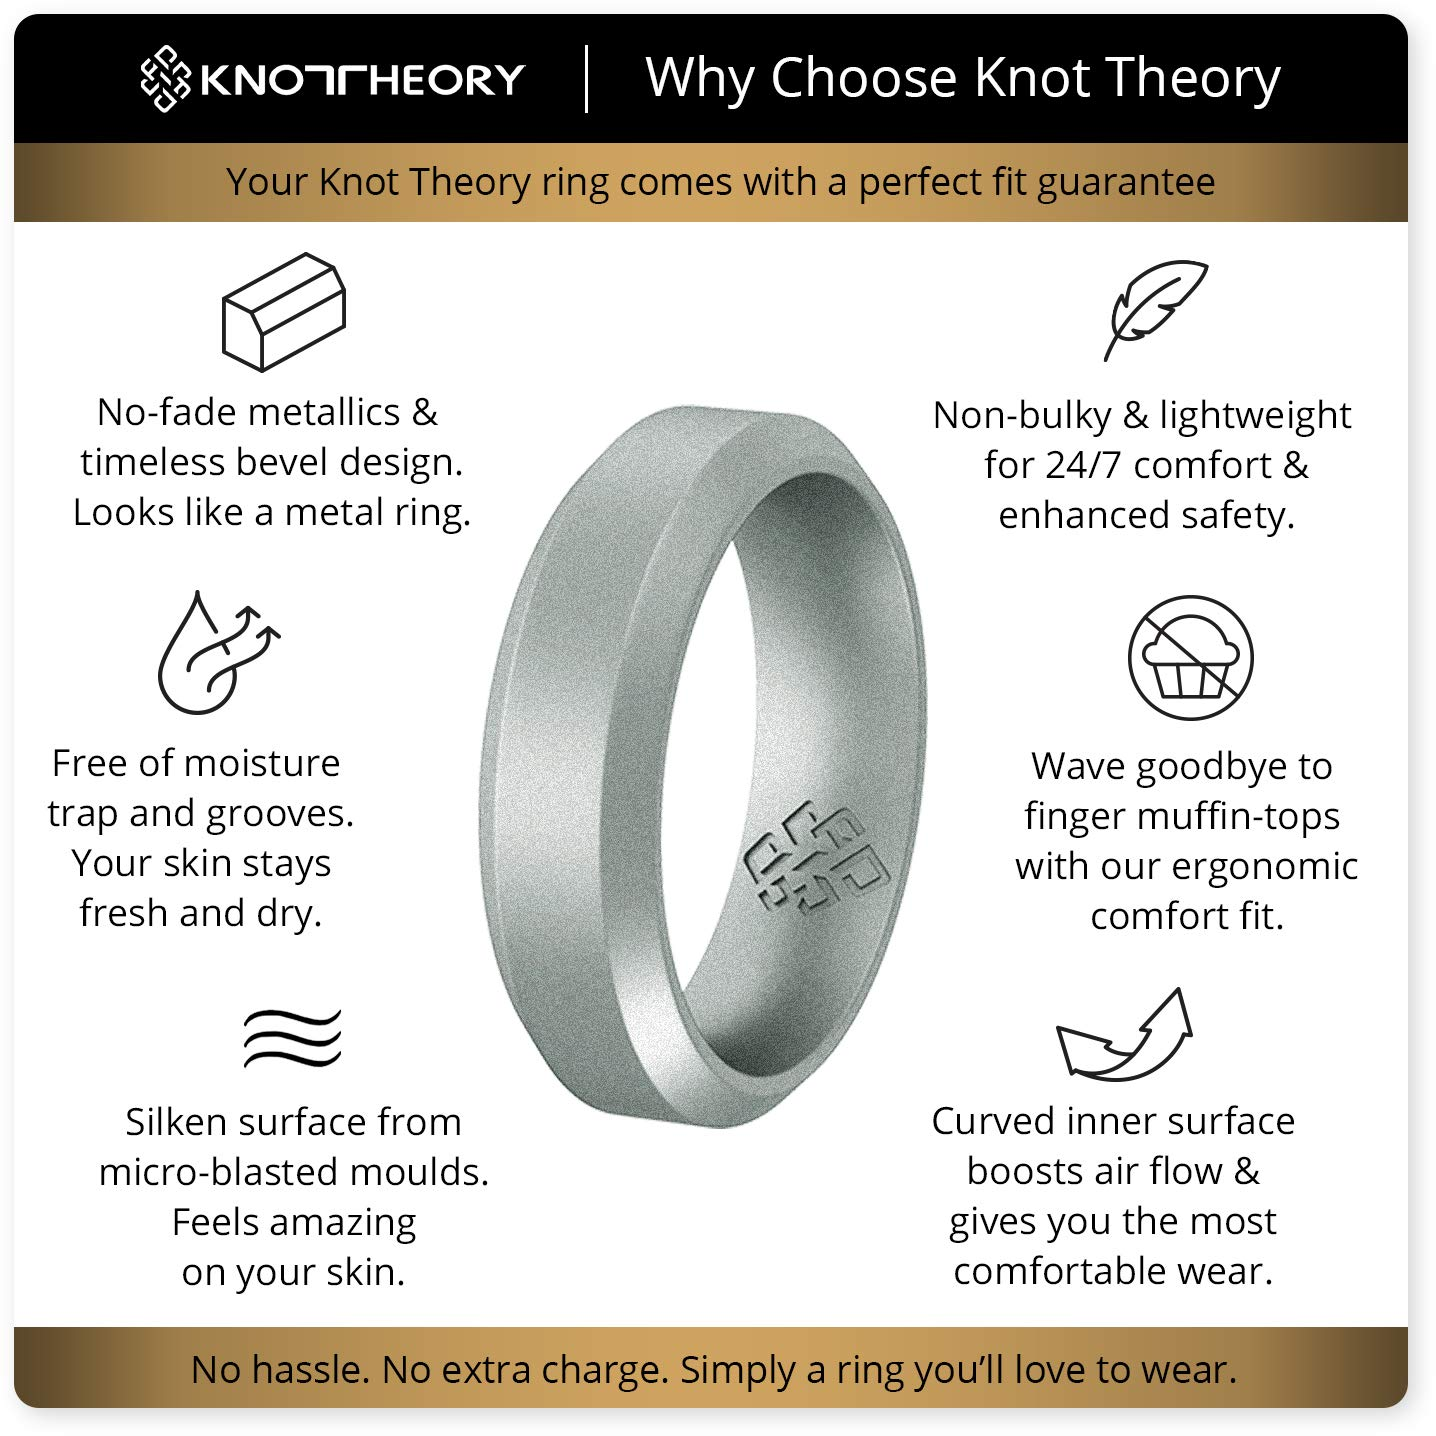 Silicone Wedding Rings by Knot Theory ★Canadian, Award-Winning Designer  ★6mm Band for Superior Comfort, Style, Safety (Black, Gray, Blue, Red,  Silver,